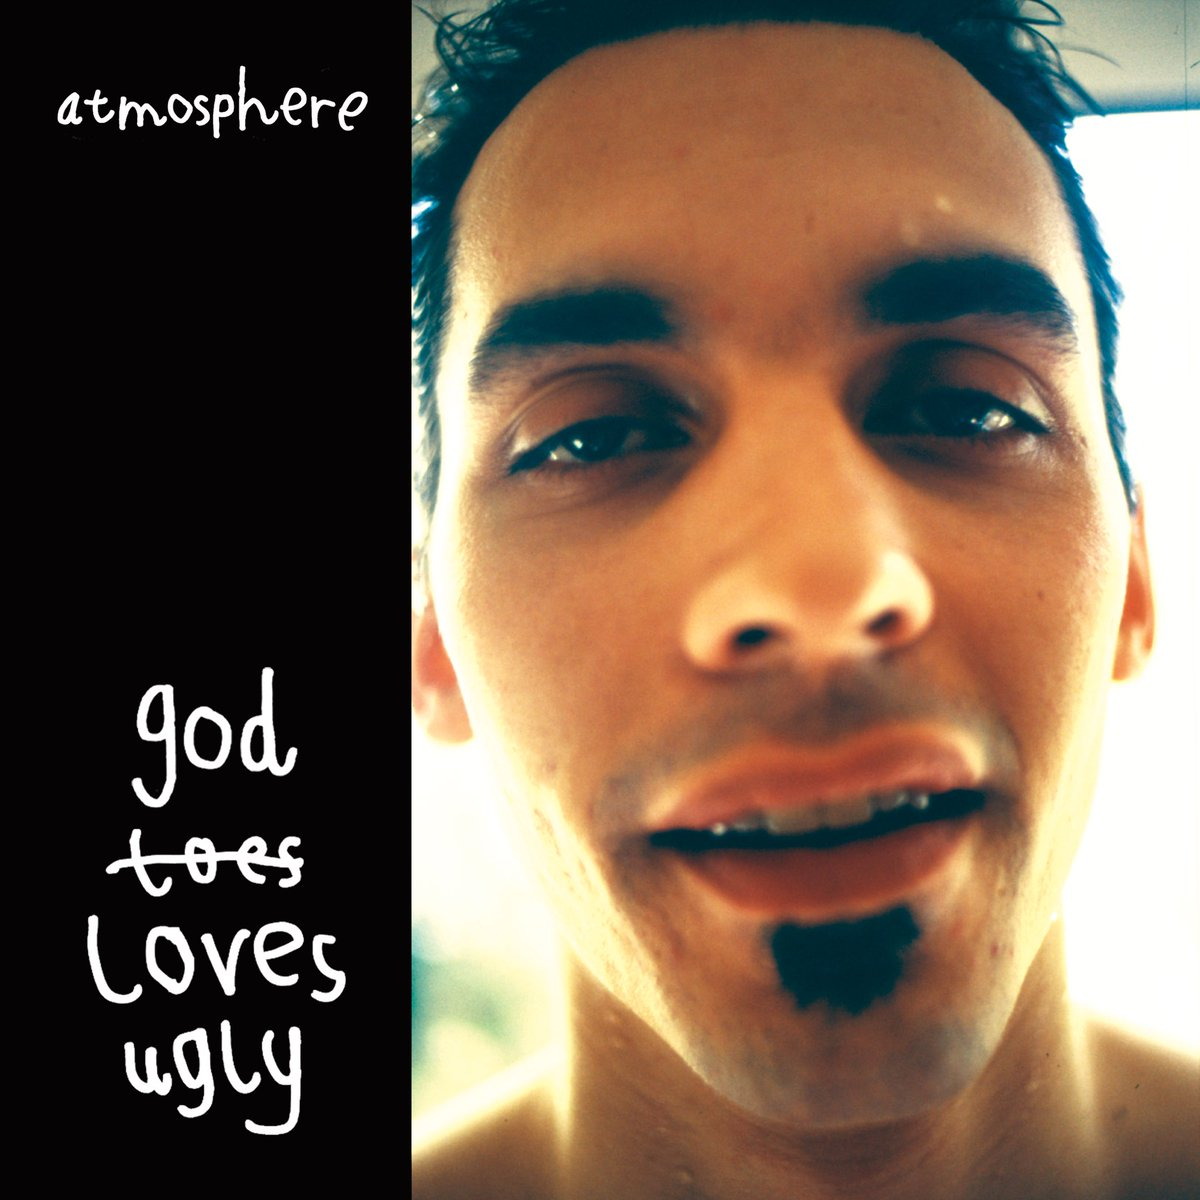 """15 years ago today, we released """"god loves ugly"""" @atmosphere https://t.co/vjVmWxTAgr"""